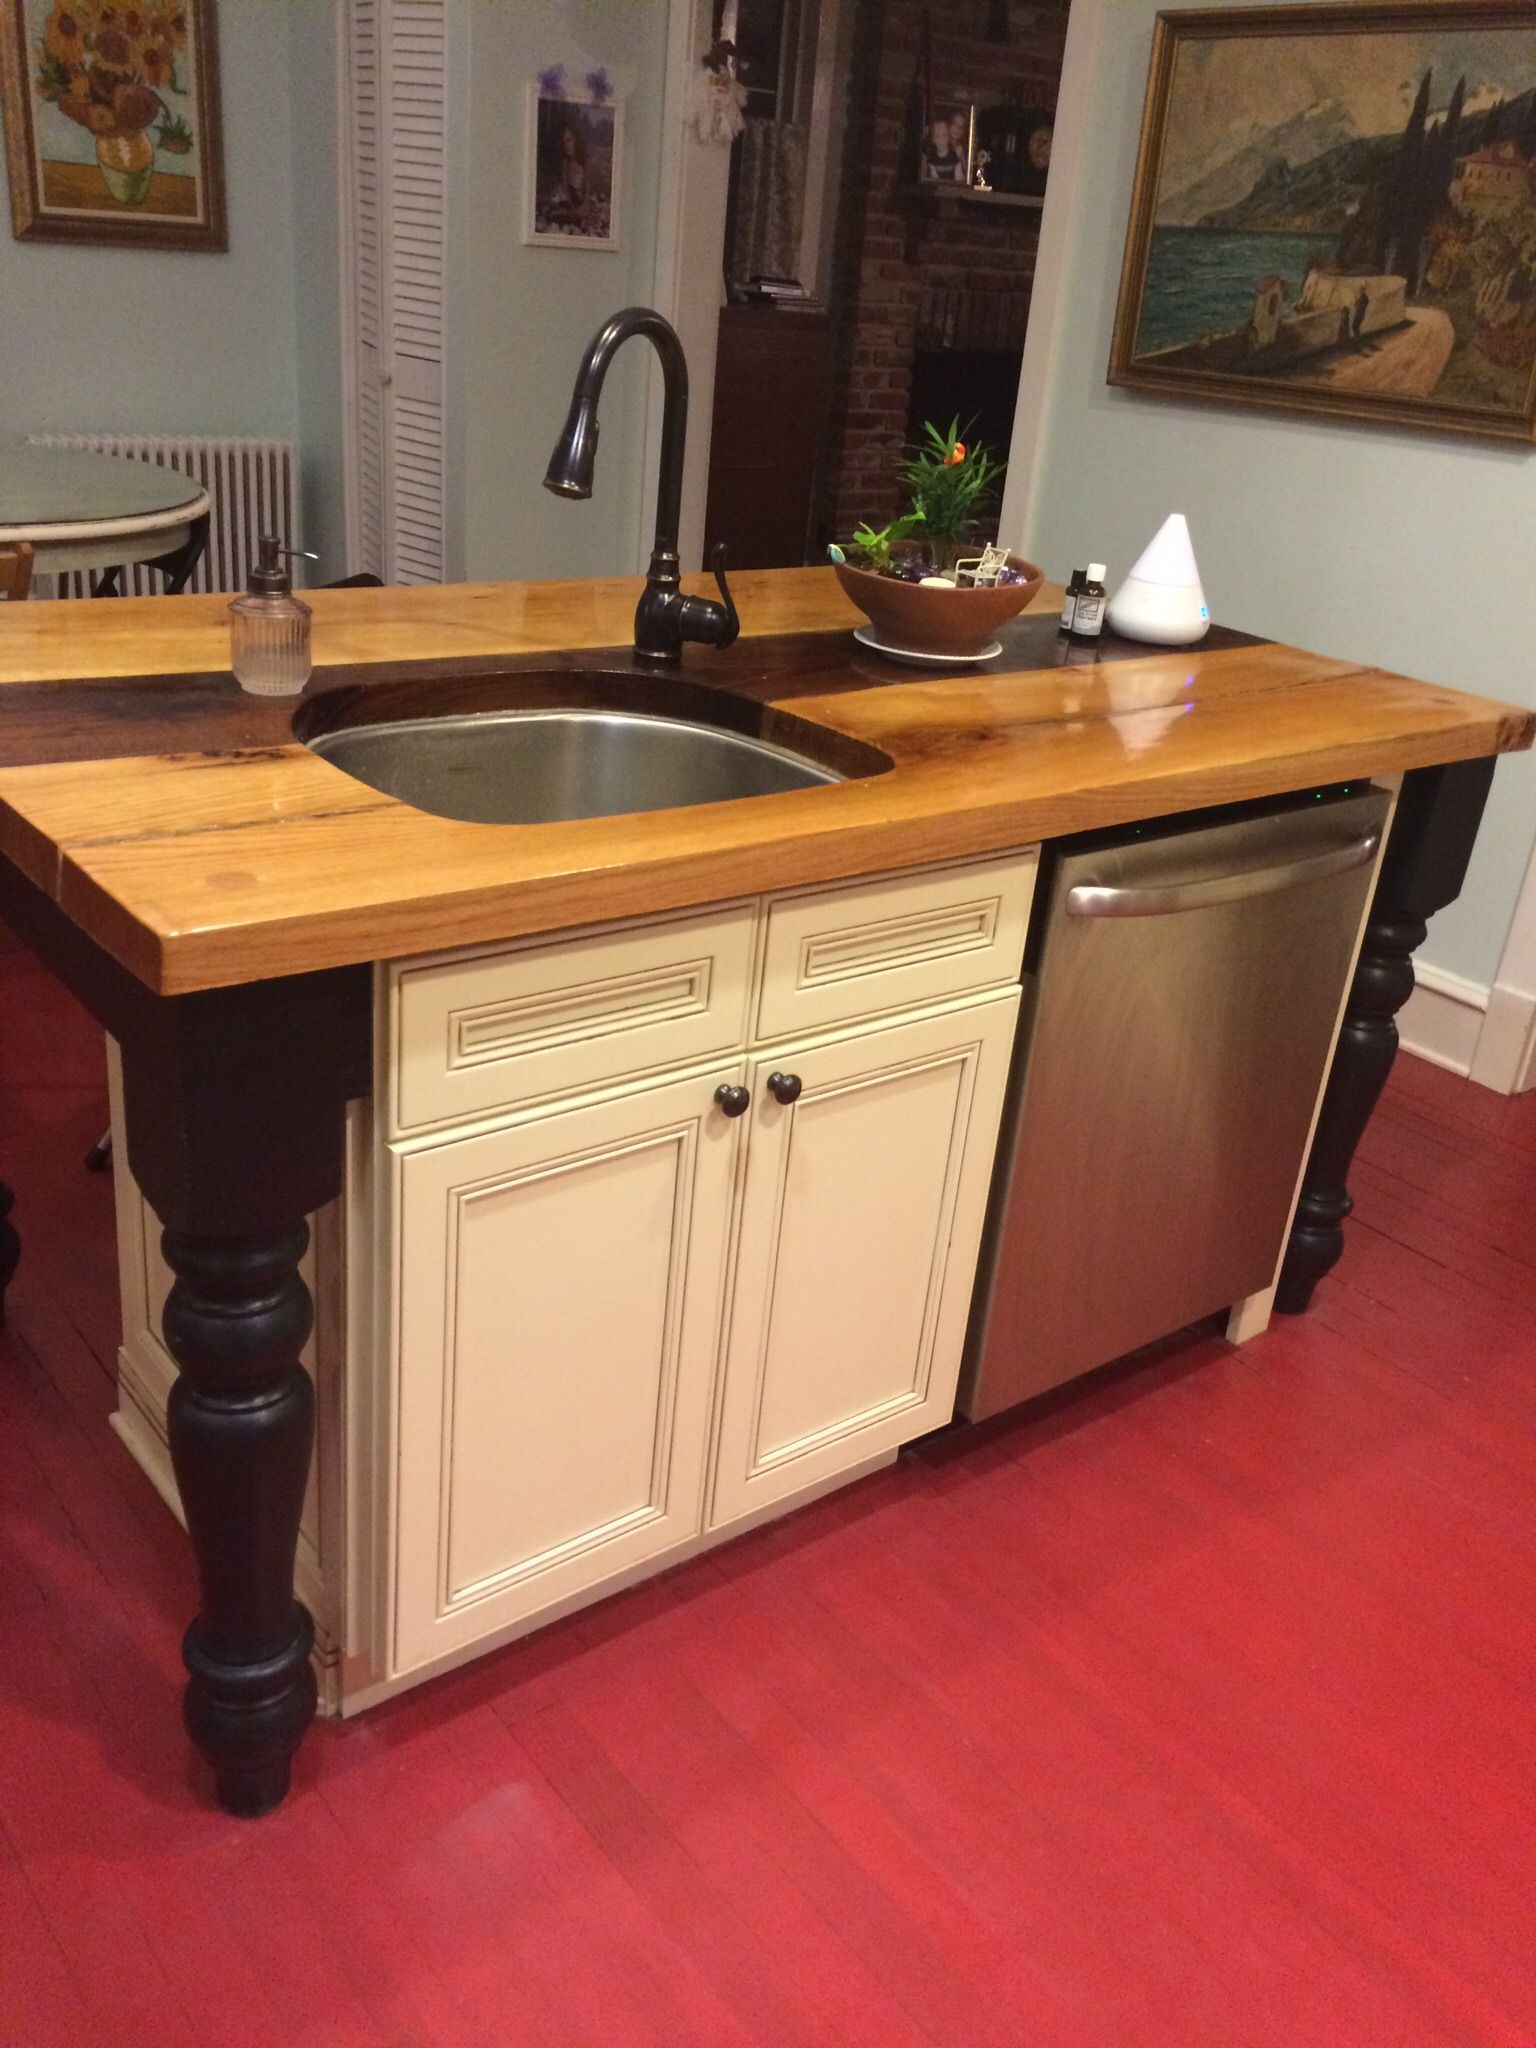 Small Kitchen Dishwashers Cleaning Check List This Custom Wood Top Island With Sink And